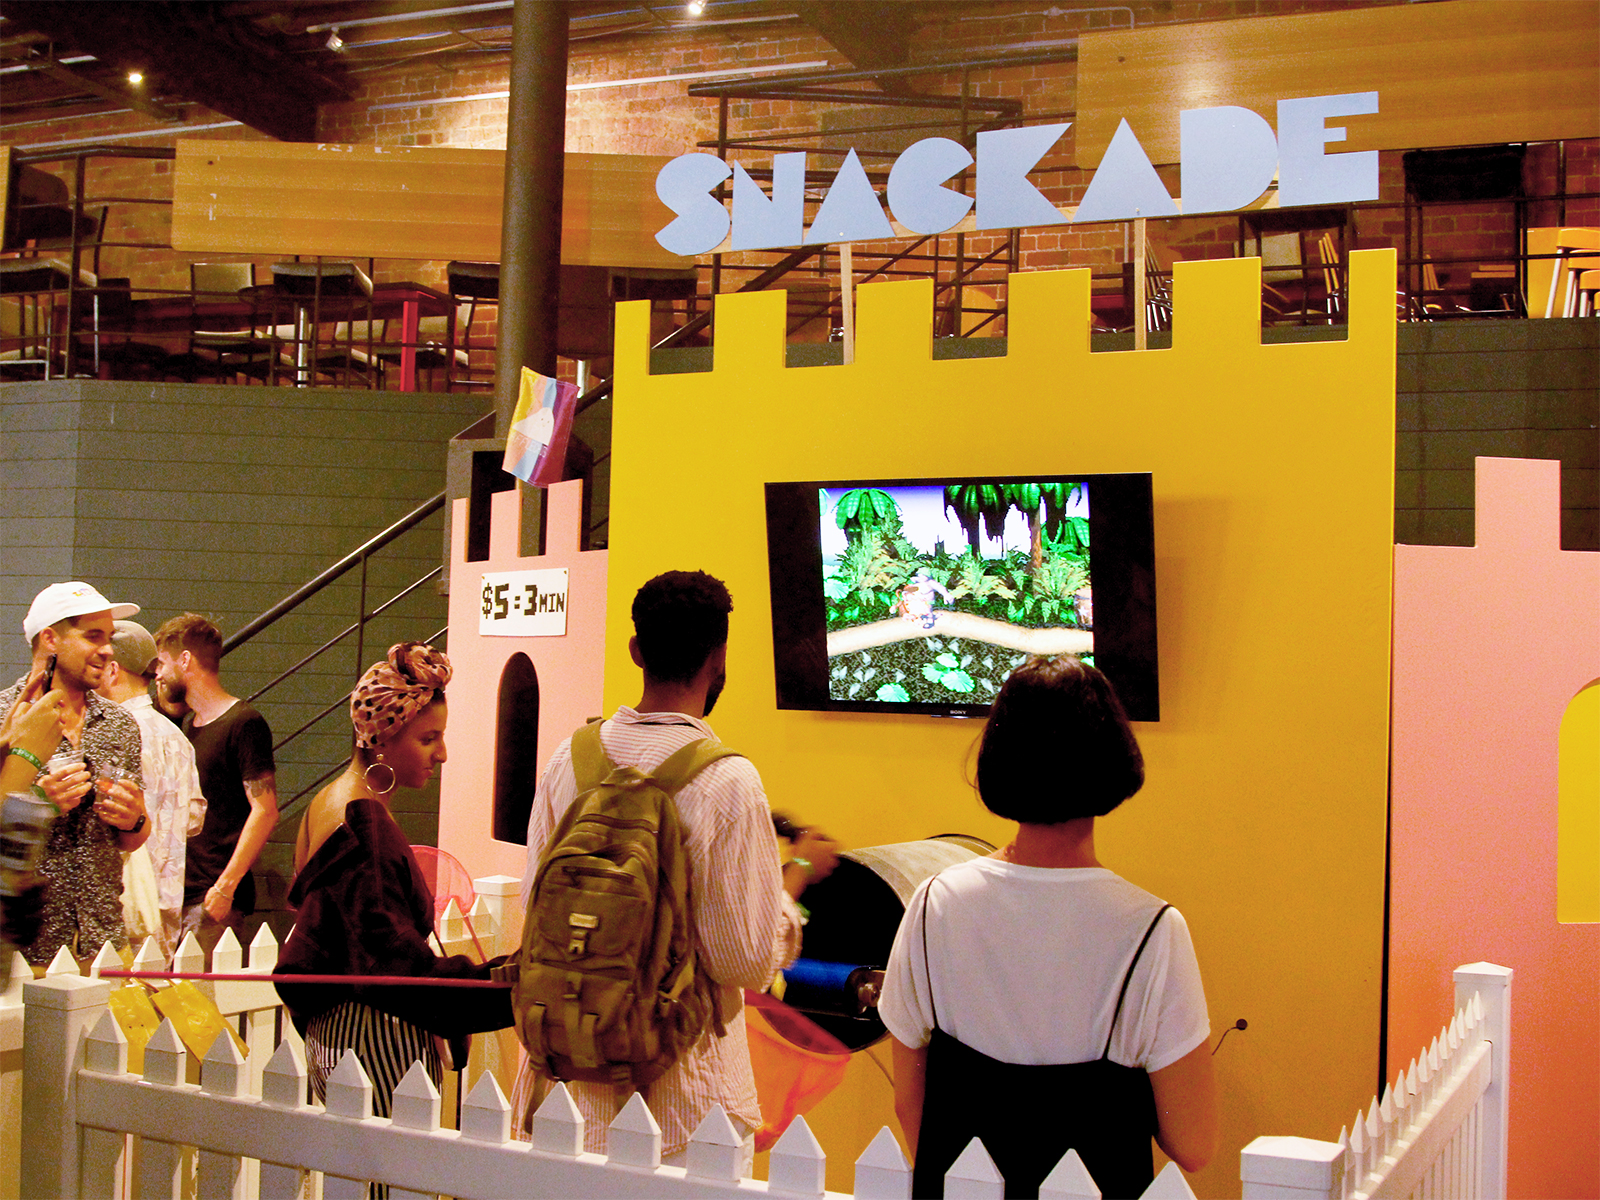 snackade sign and video game